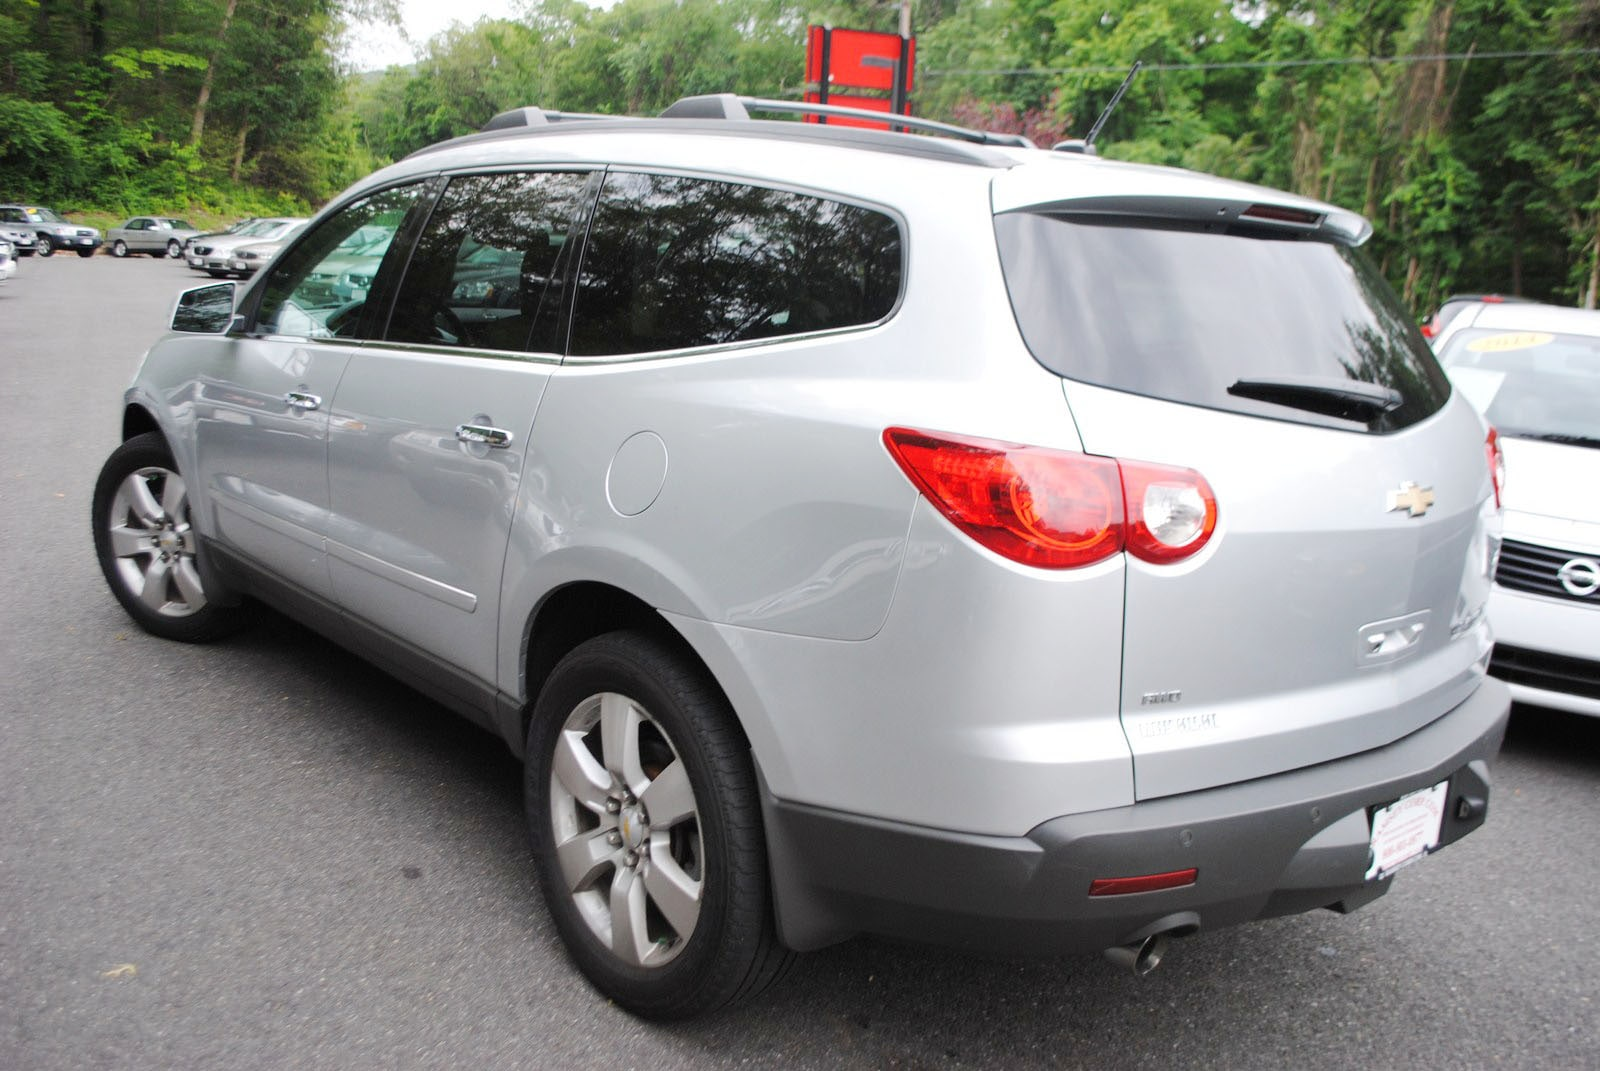 used 2011 chevrolet traverse for sale west milford nj. Black Bedroom Furniture Sets. Home Design Ideas